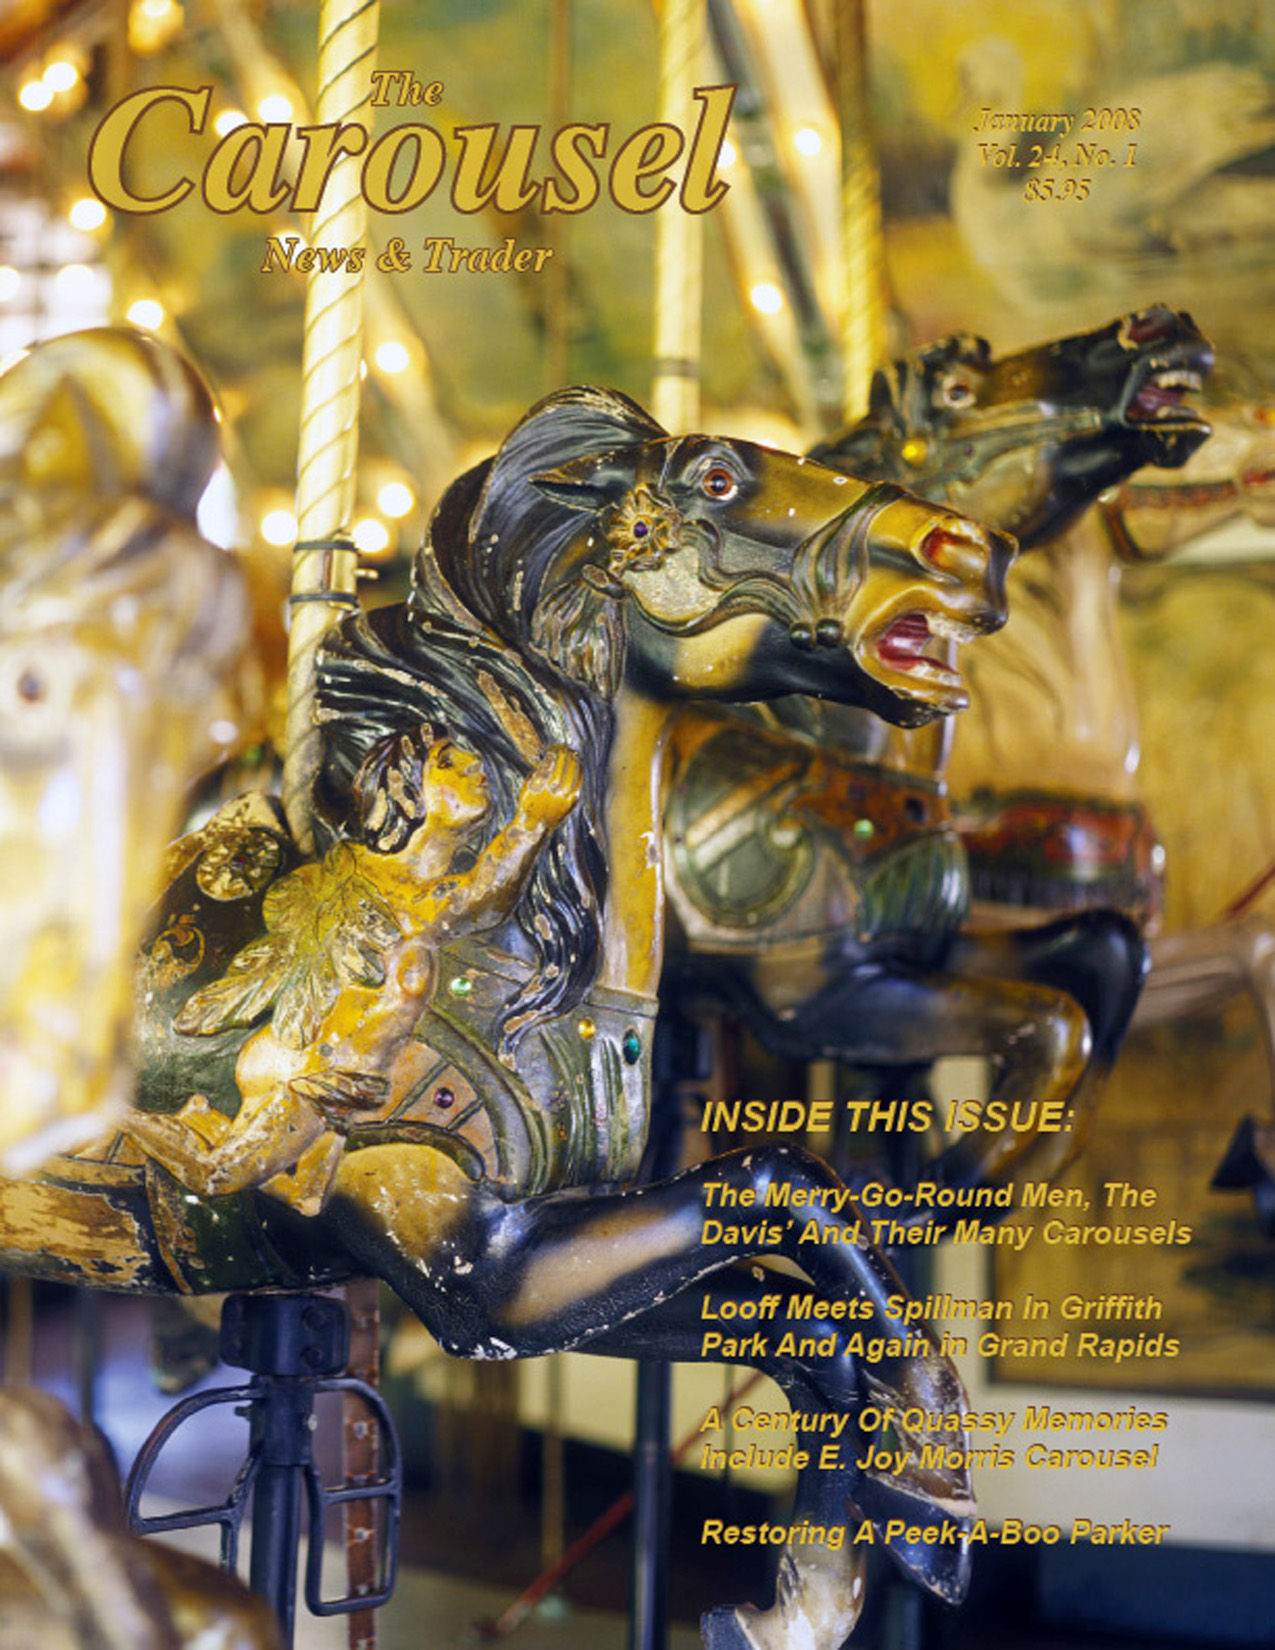 Issue No. 1, Vol. 24 – January 2008